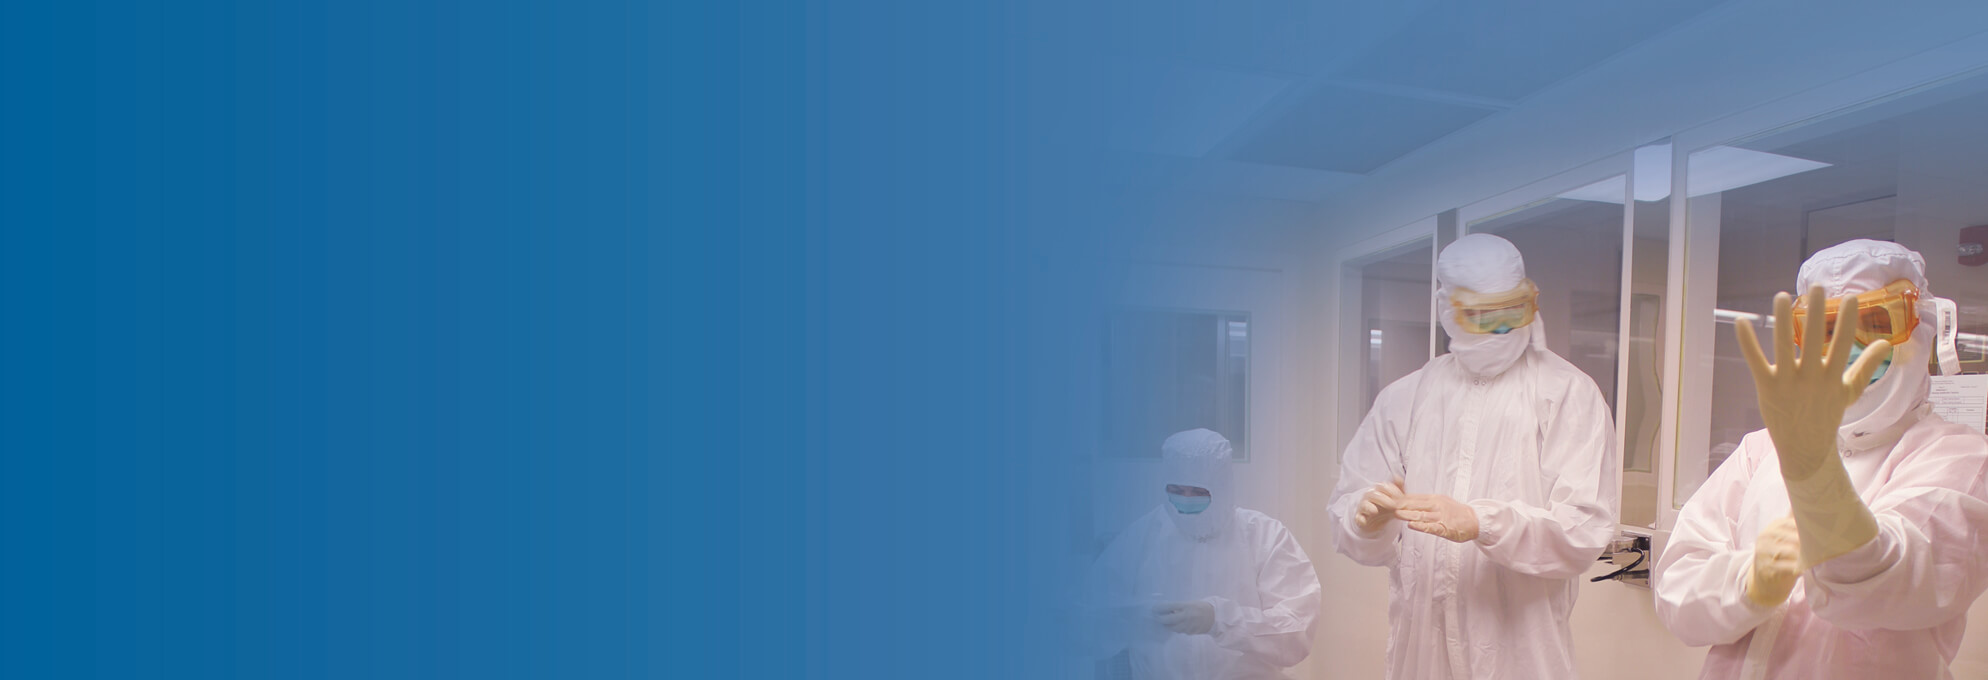 Aseptic Manufacturing of Biopharmaceuticals